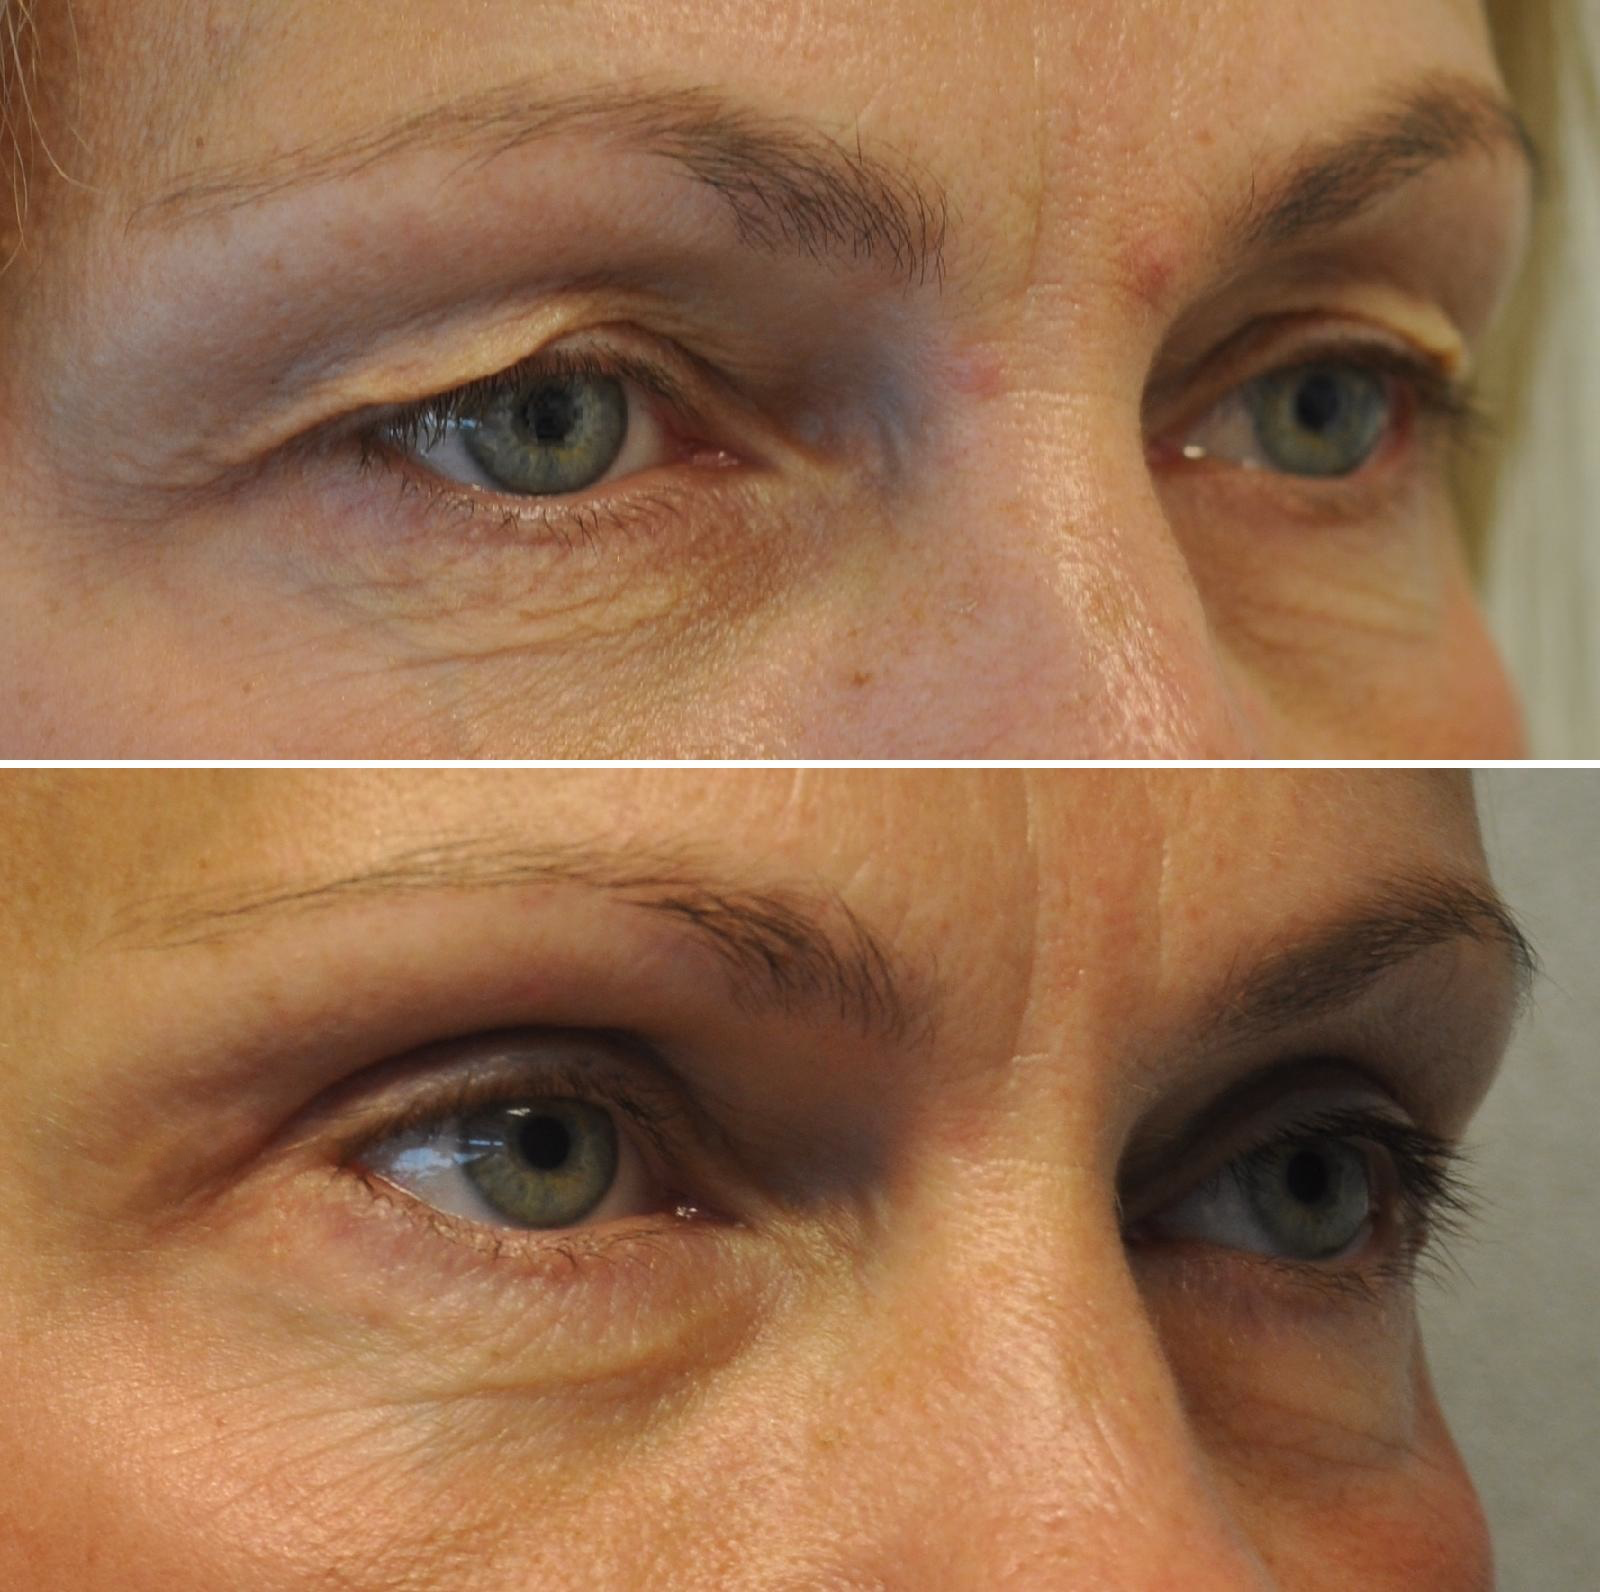 bds02 - Results Upper eyelid correction